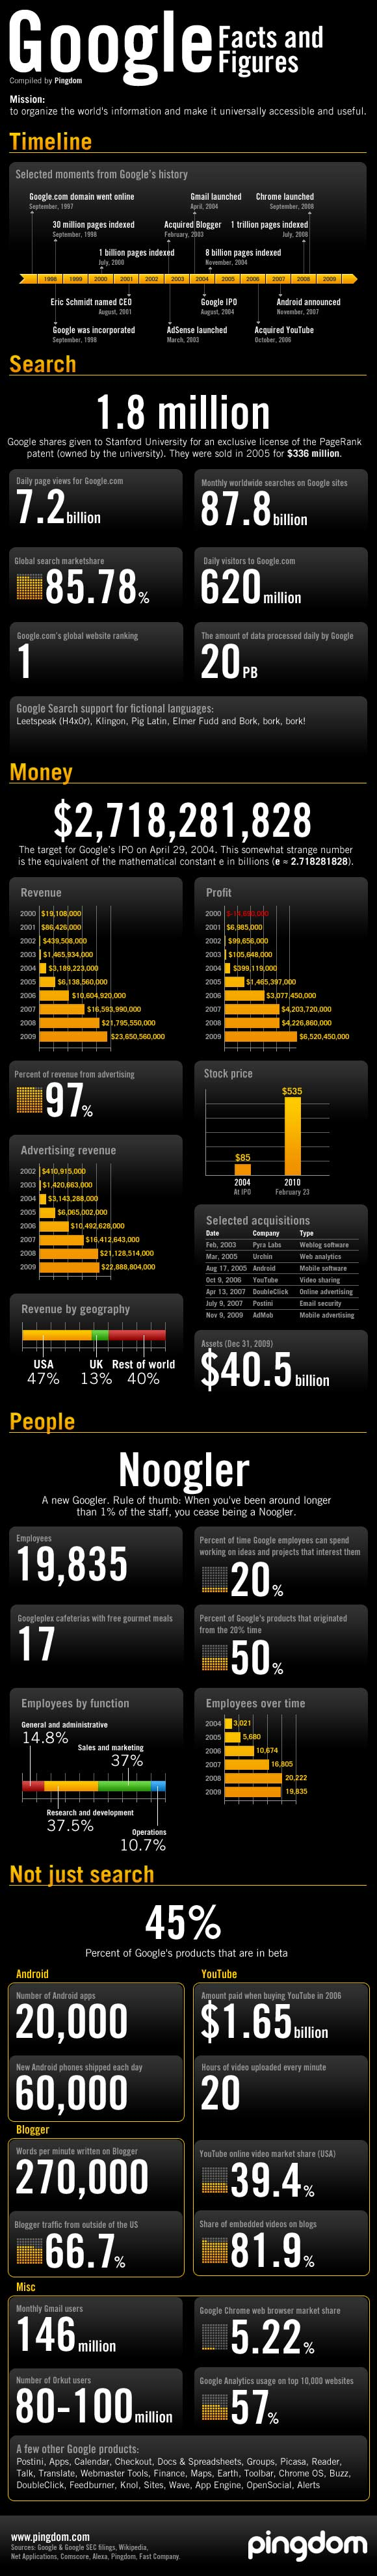 A feast of Google stats in one almighty graphic